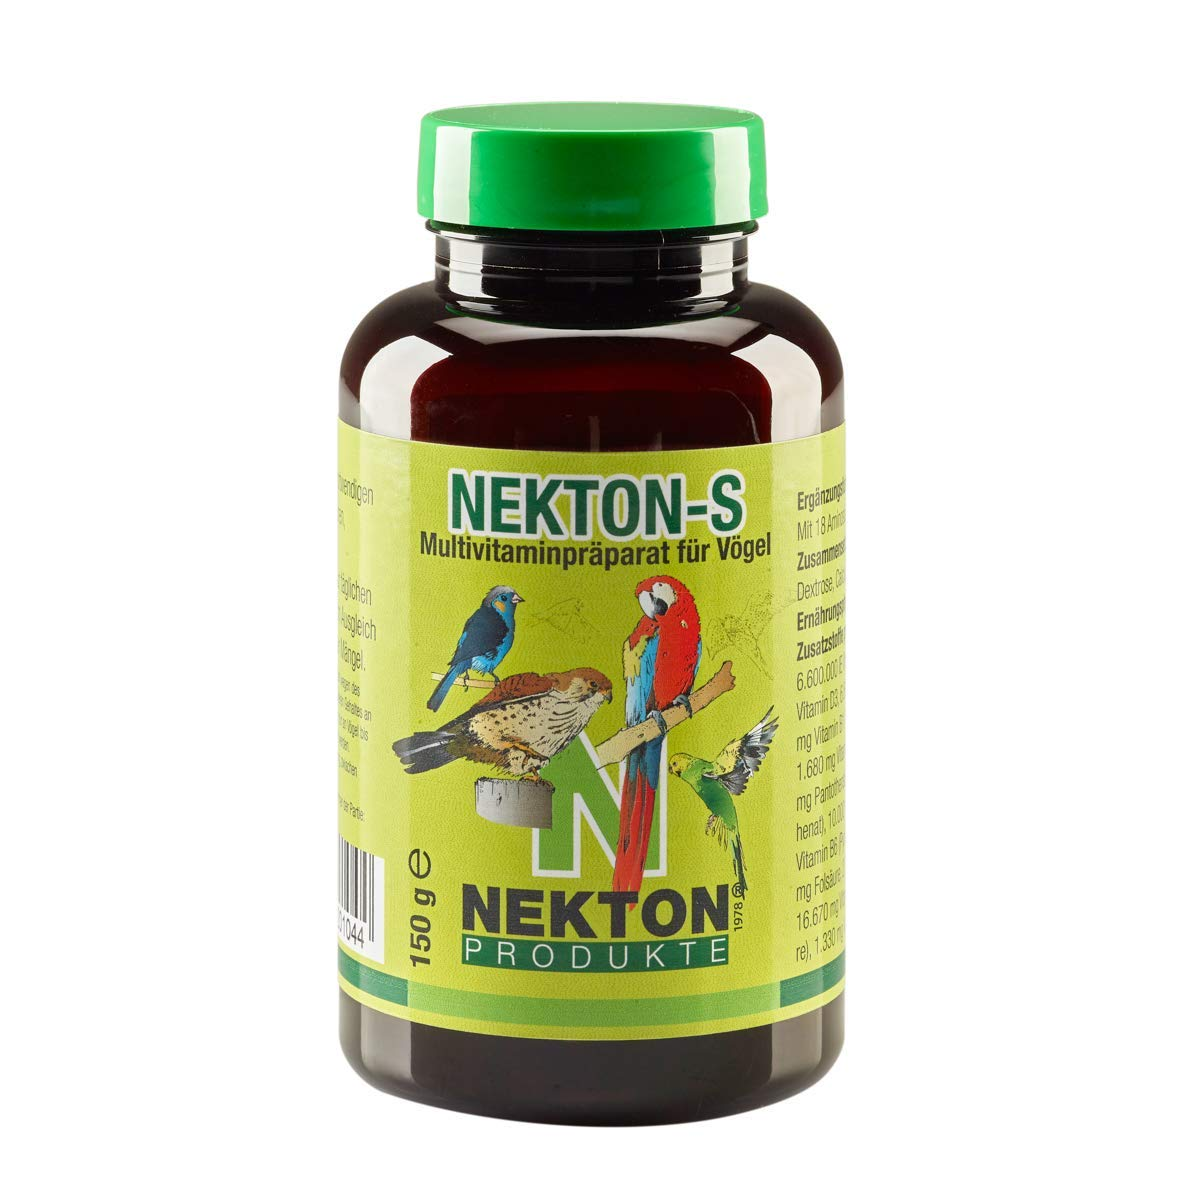 B0002DILTM Nekton-S Multi-Vitamin for Birds 61h6LaVCOsL